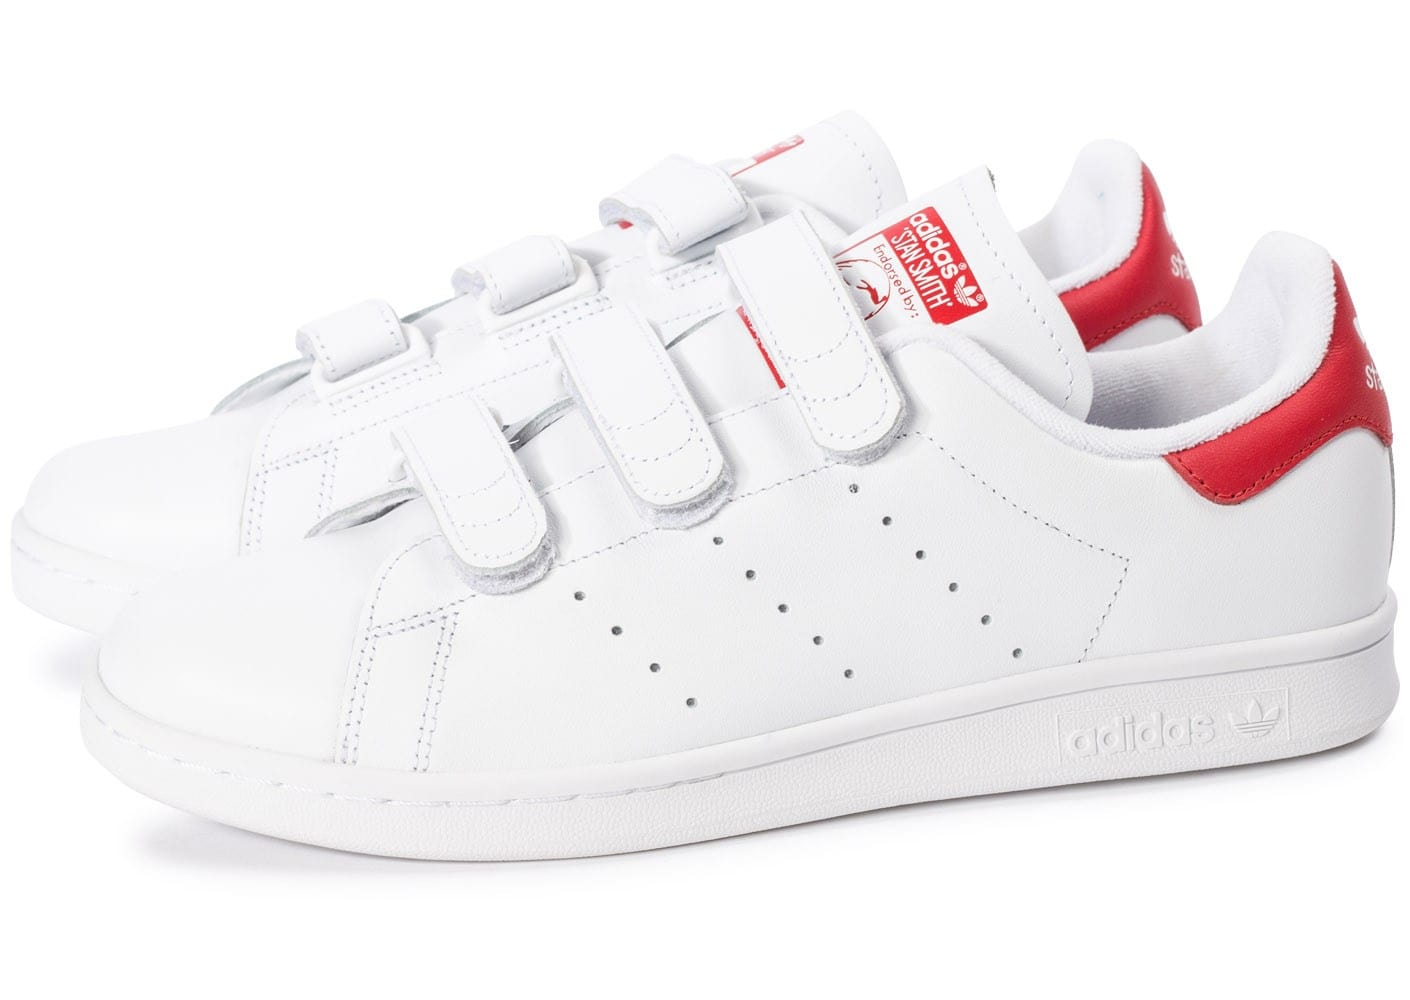 adidas stan smith cf velcro blanc rouge chaussures homme chausport. Black Bedroom Furniture Sets. Home Design Ideas